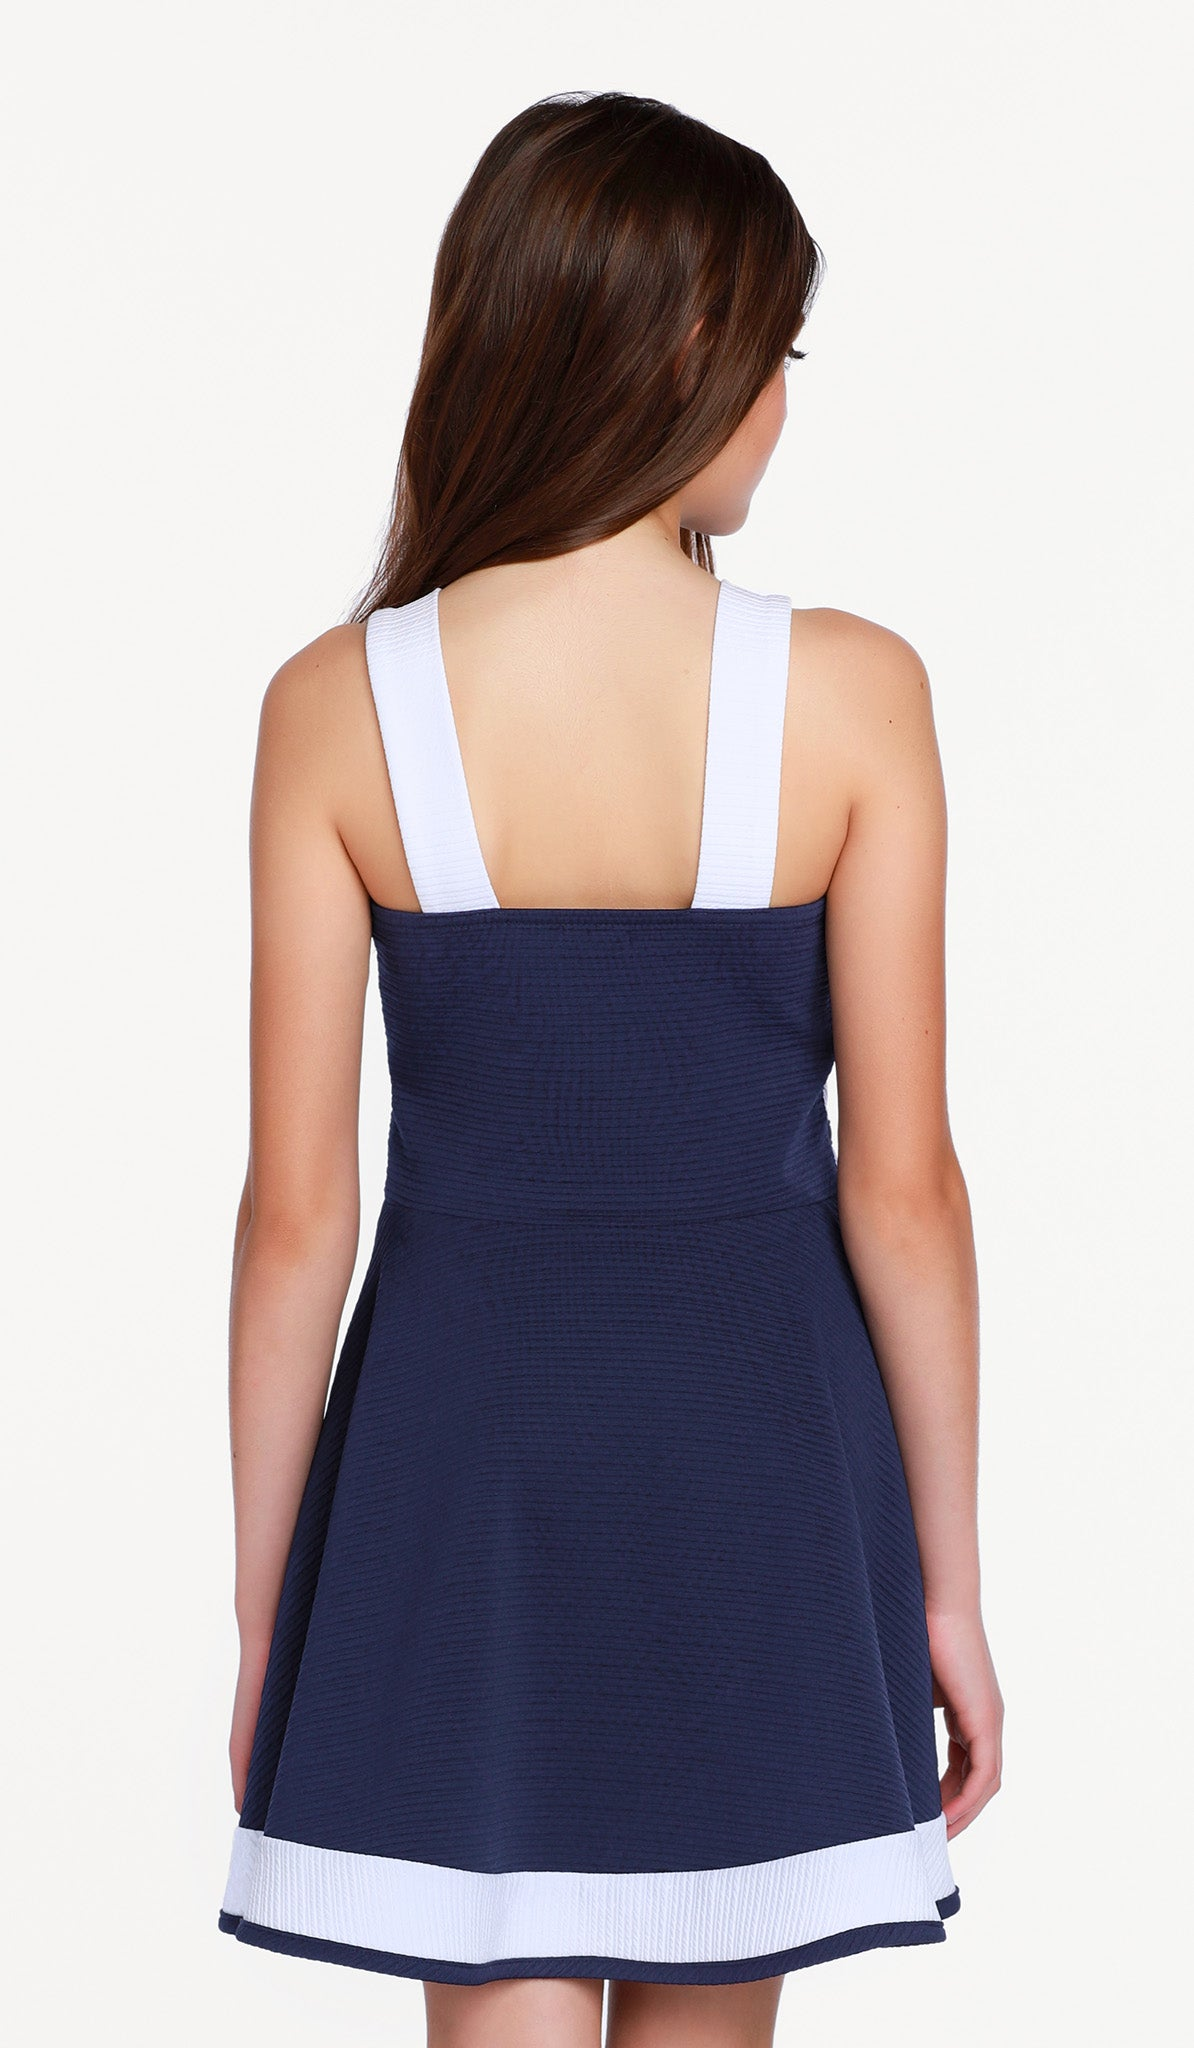 The Bridget Dress - Navy textured stretch knit fit and flare dress with white trim detail